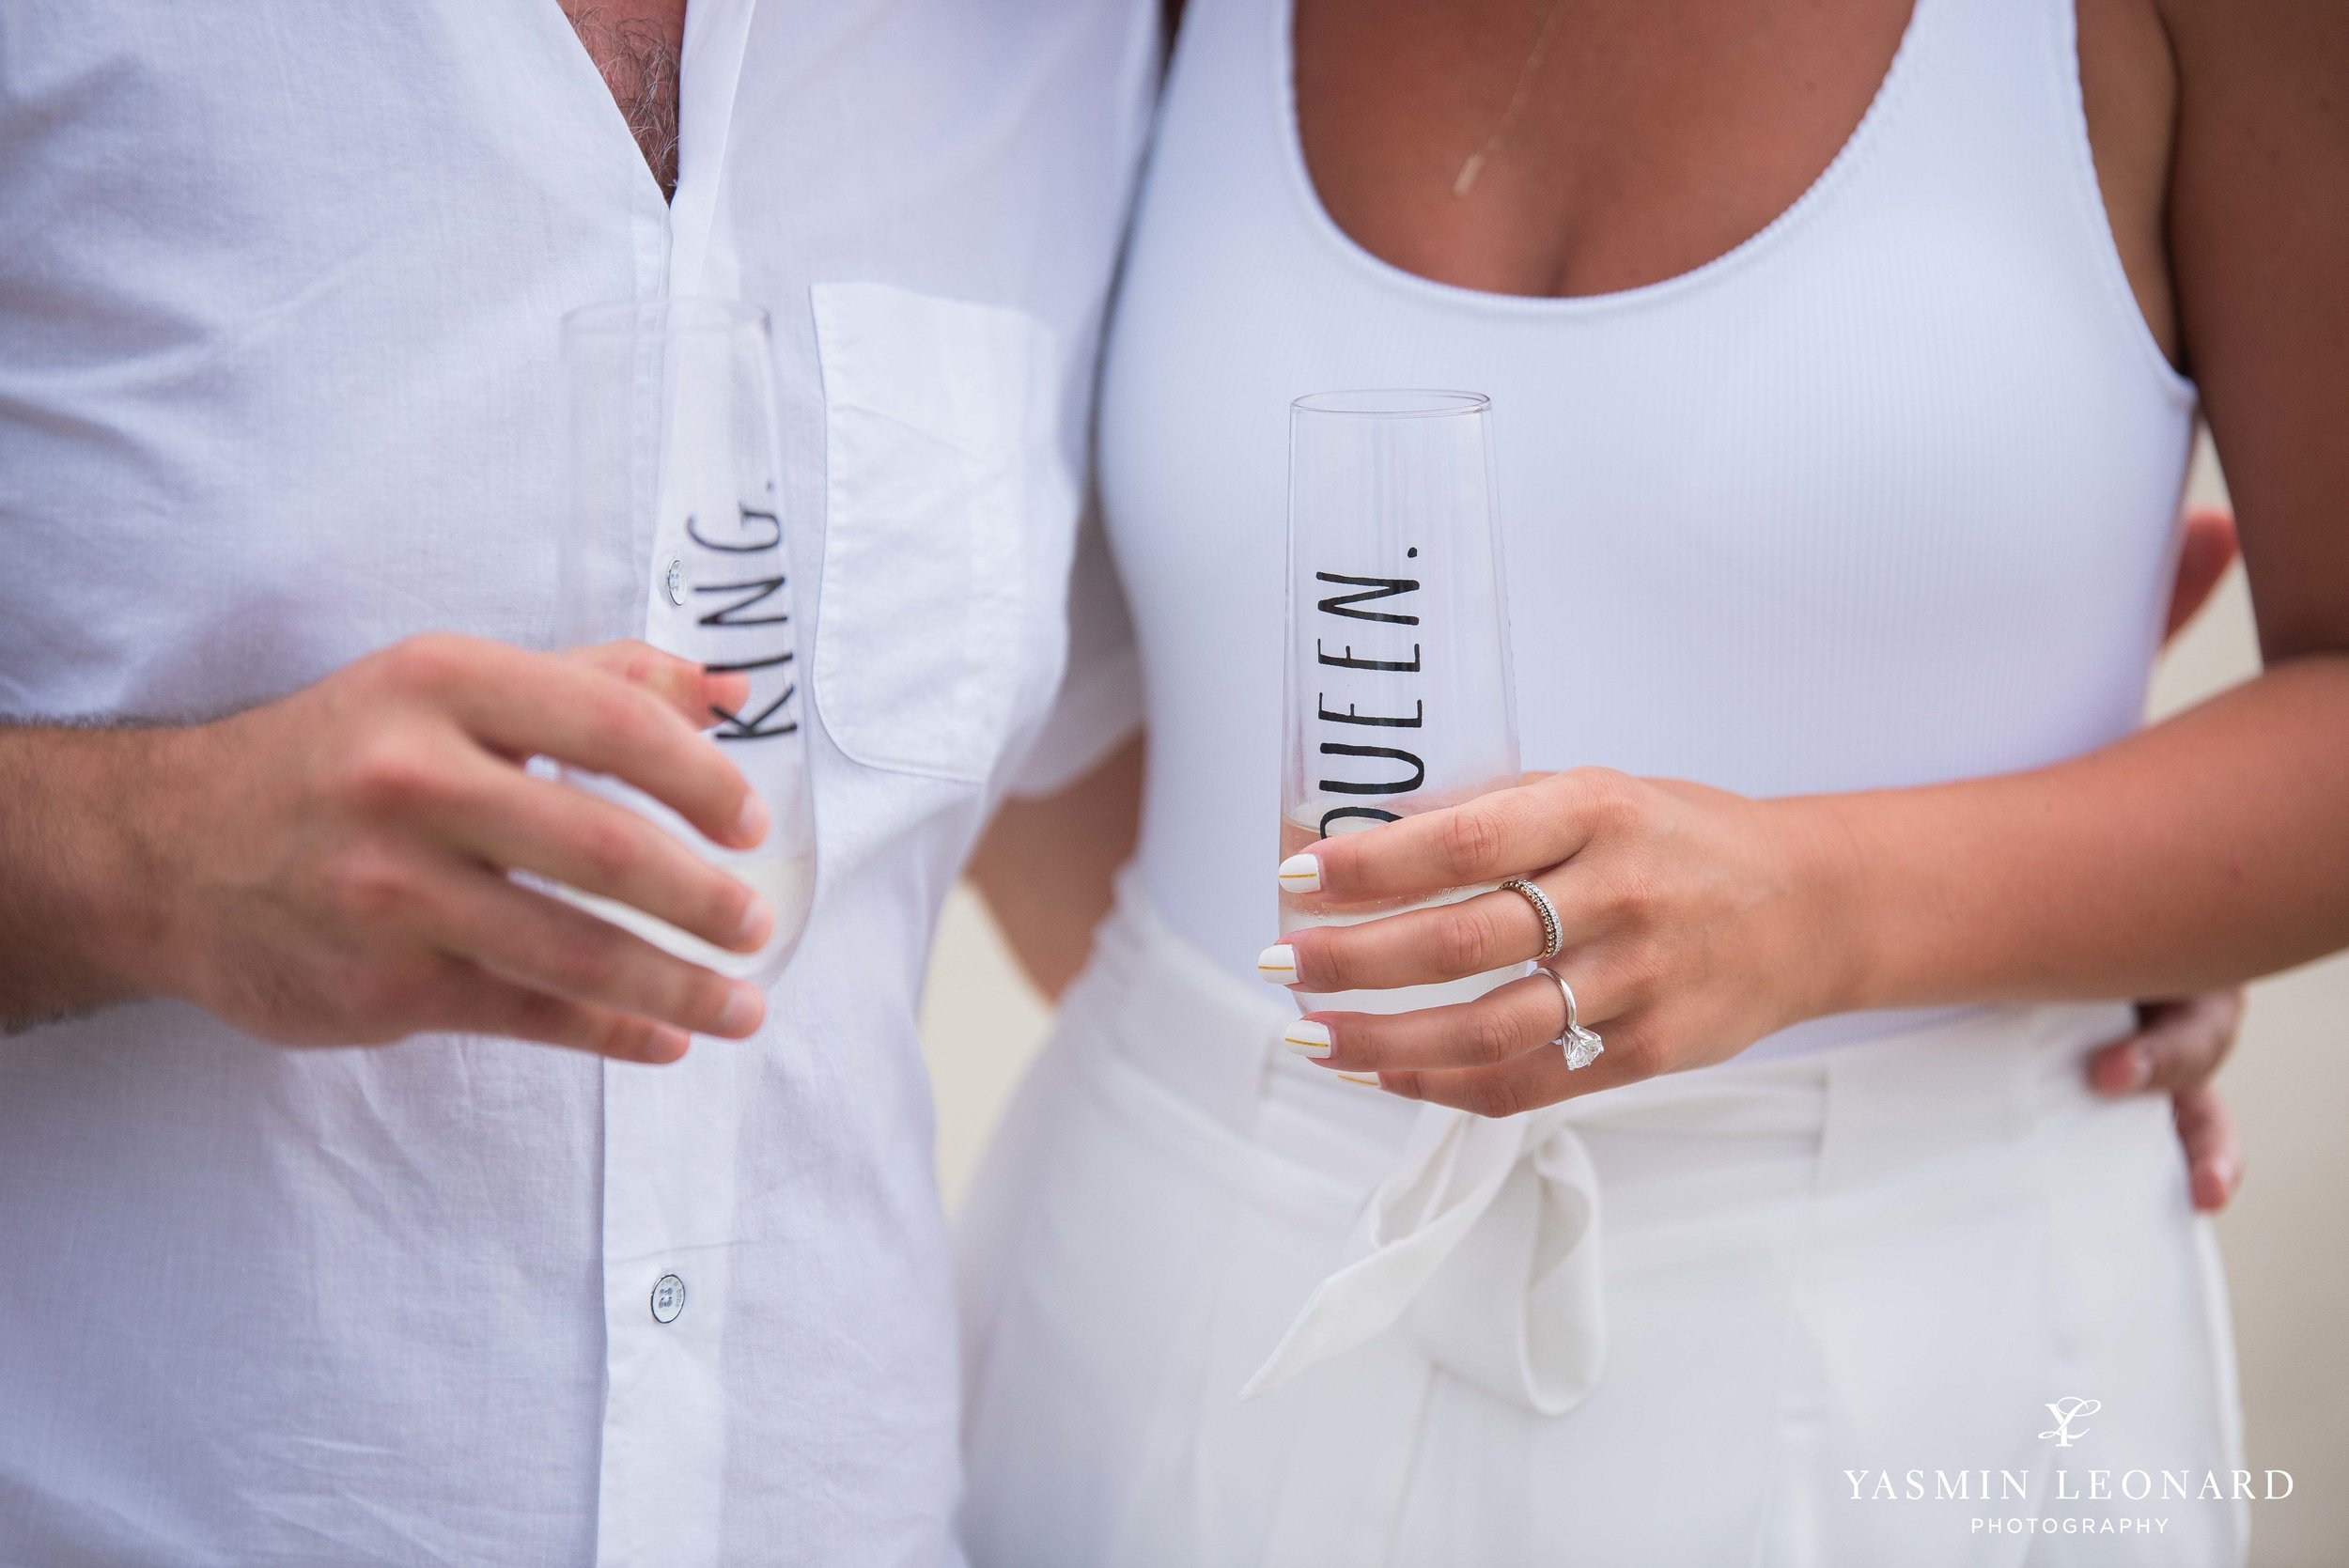 Beach Proposal - Beach Engagement Kiawah Island Photographer - NC Beach Photographer - How He Asked - NC Photographer - Proposal Ideas - Engagement Ring - Yasmin Leonard Photography-6.jpg